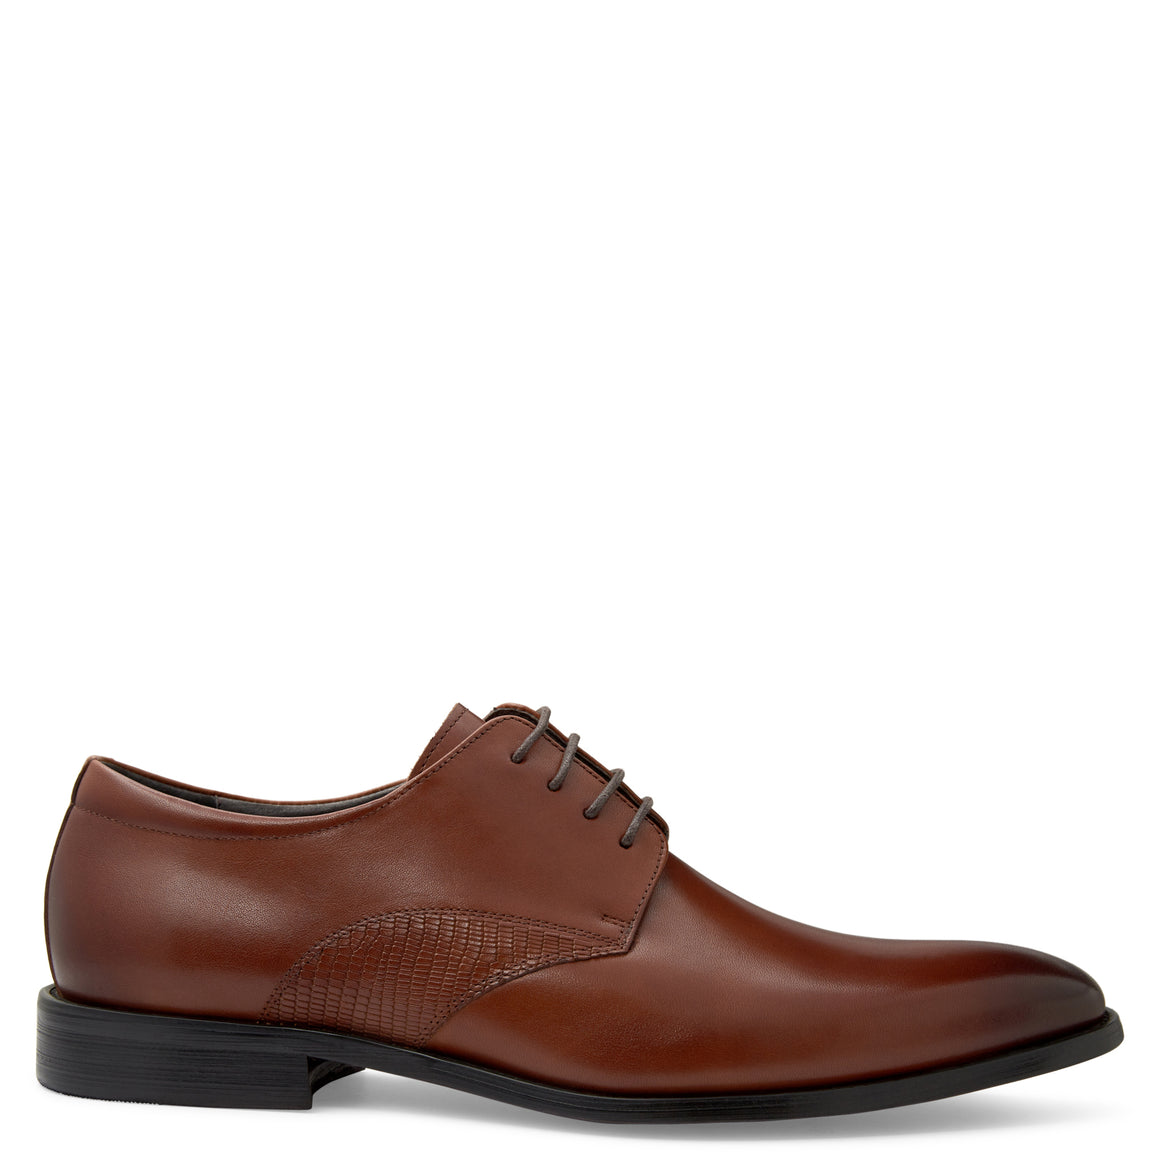 Will Tan Derby Shoes